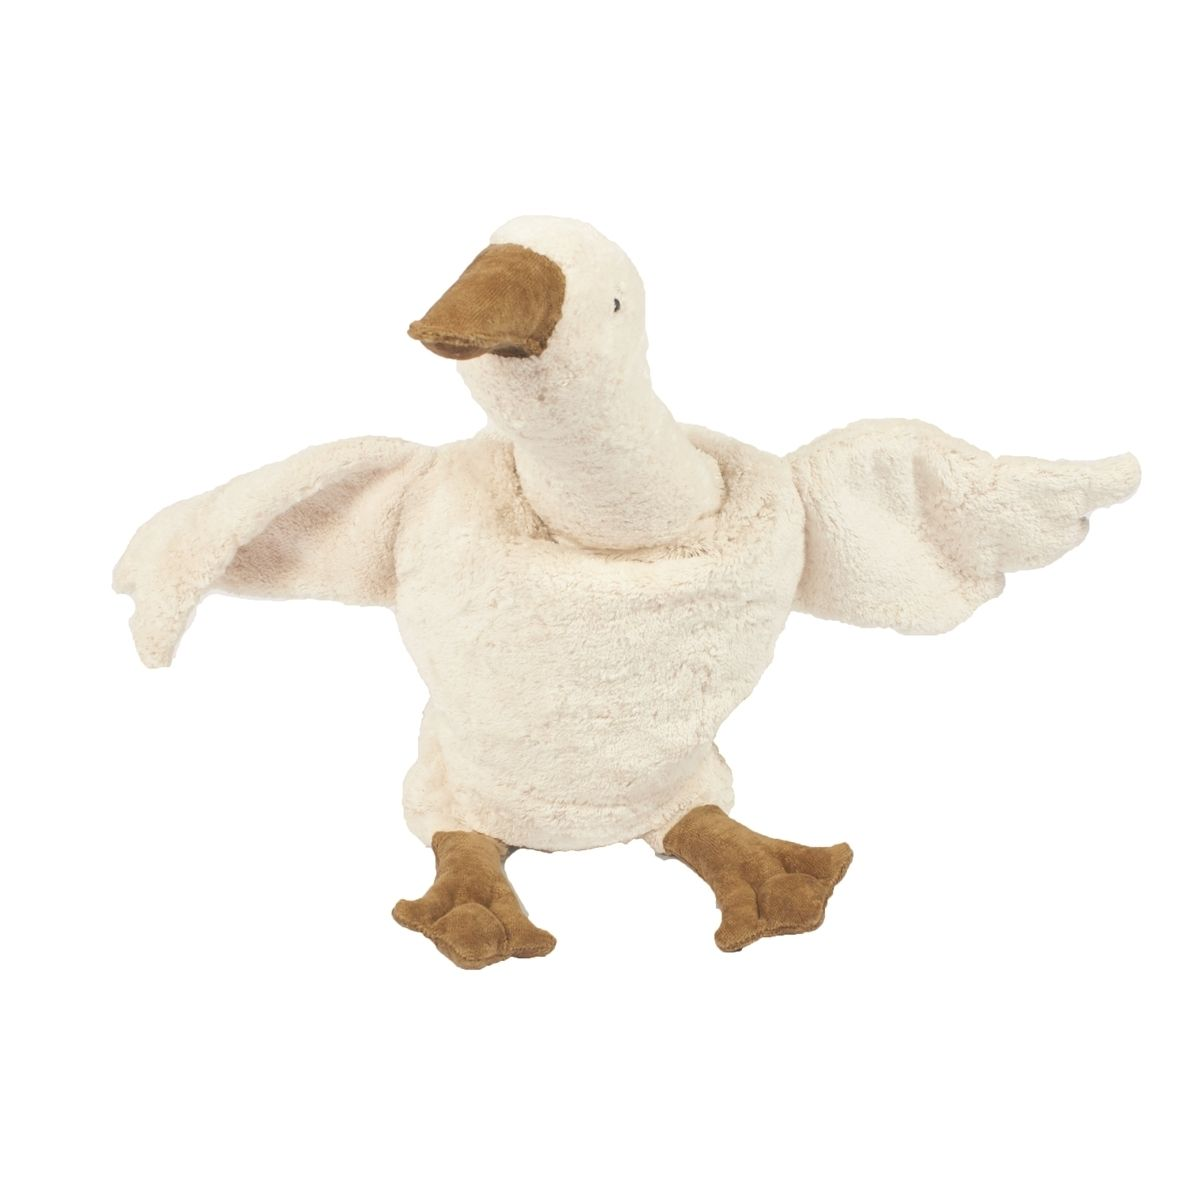 Senger Naturwelt Cuddly animal Goose large